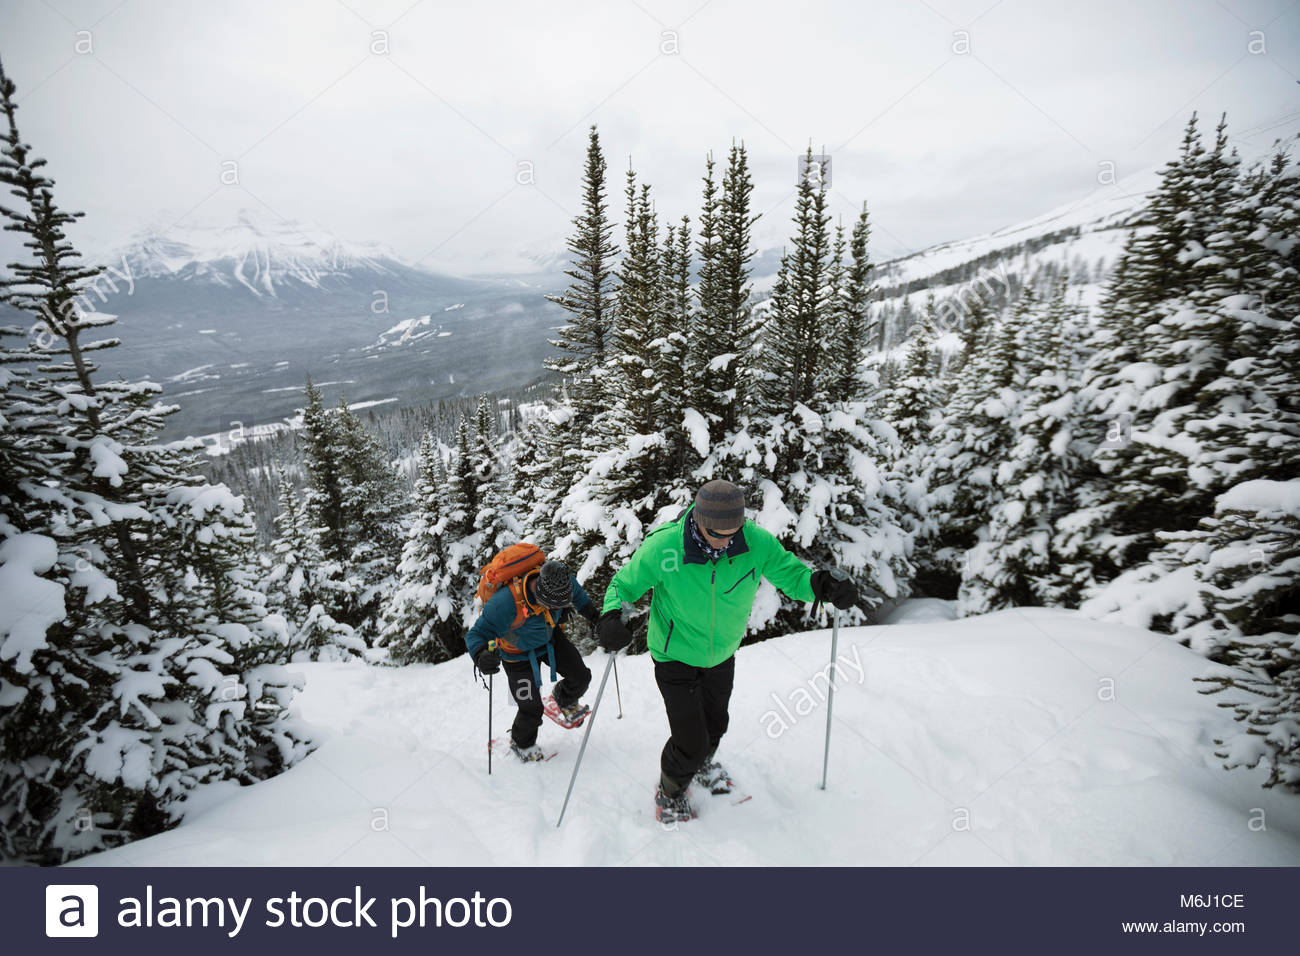 Friends snowshoeing, climbing snowy mountain hill - Stock Image